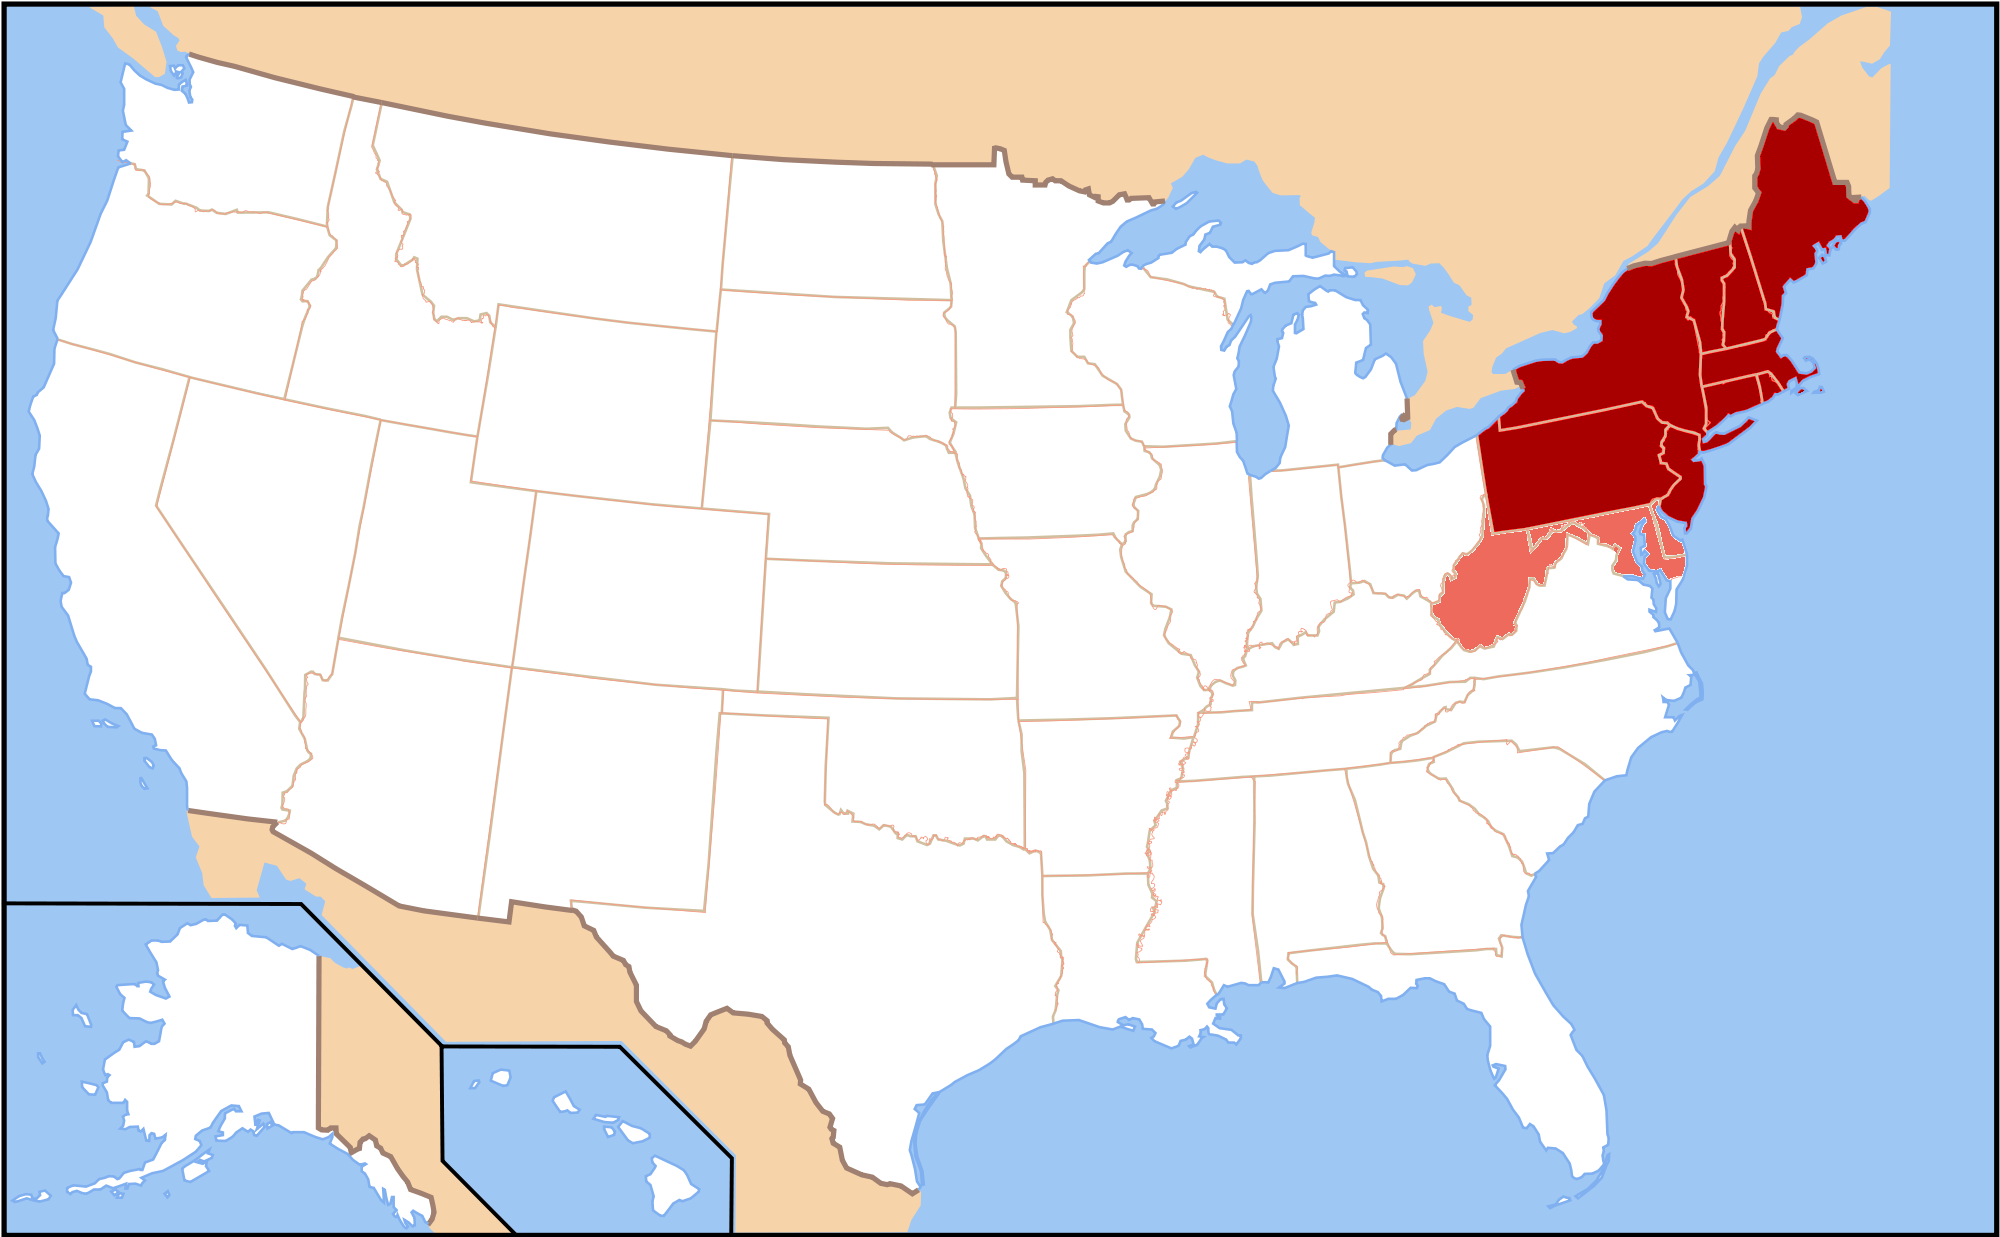 File:Map of the Northeastern United States.png - Wikimedia Commons